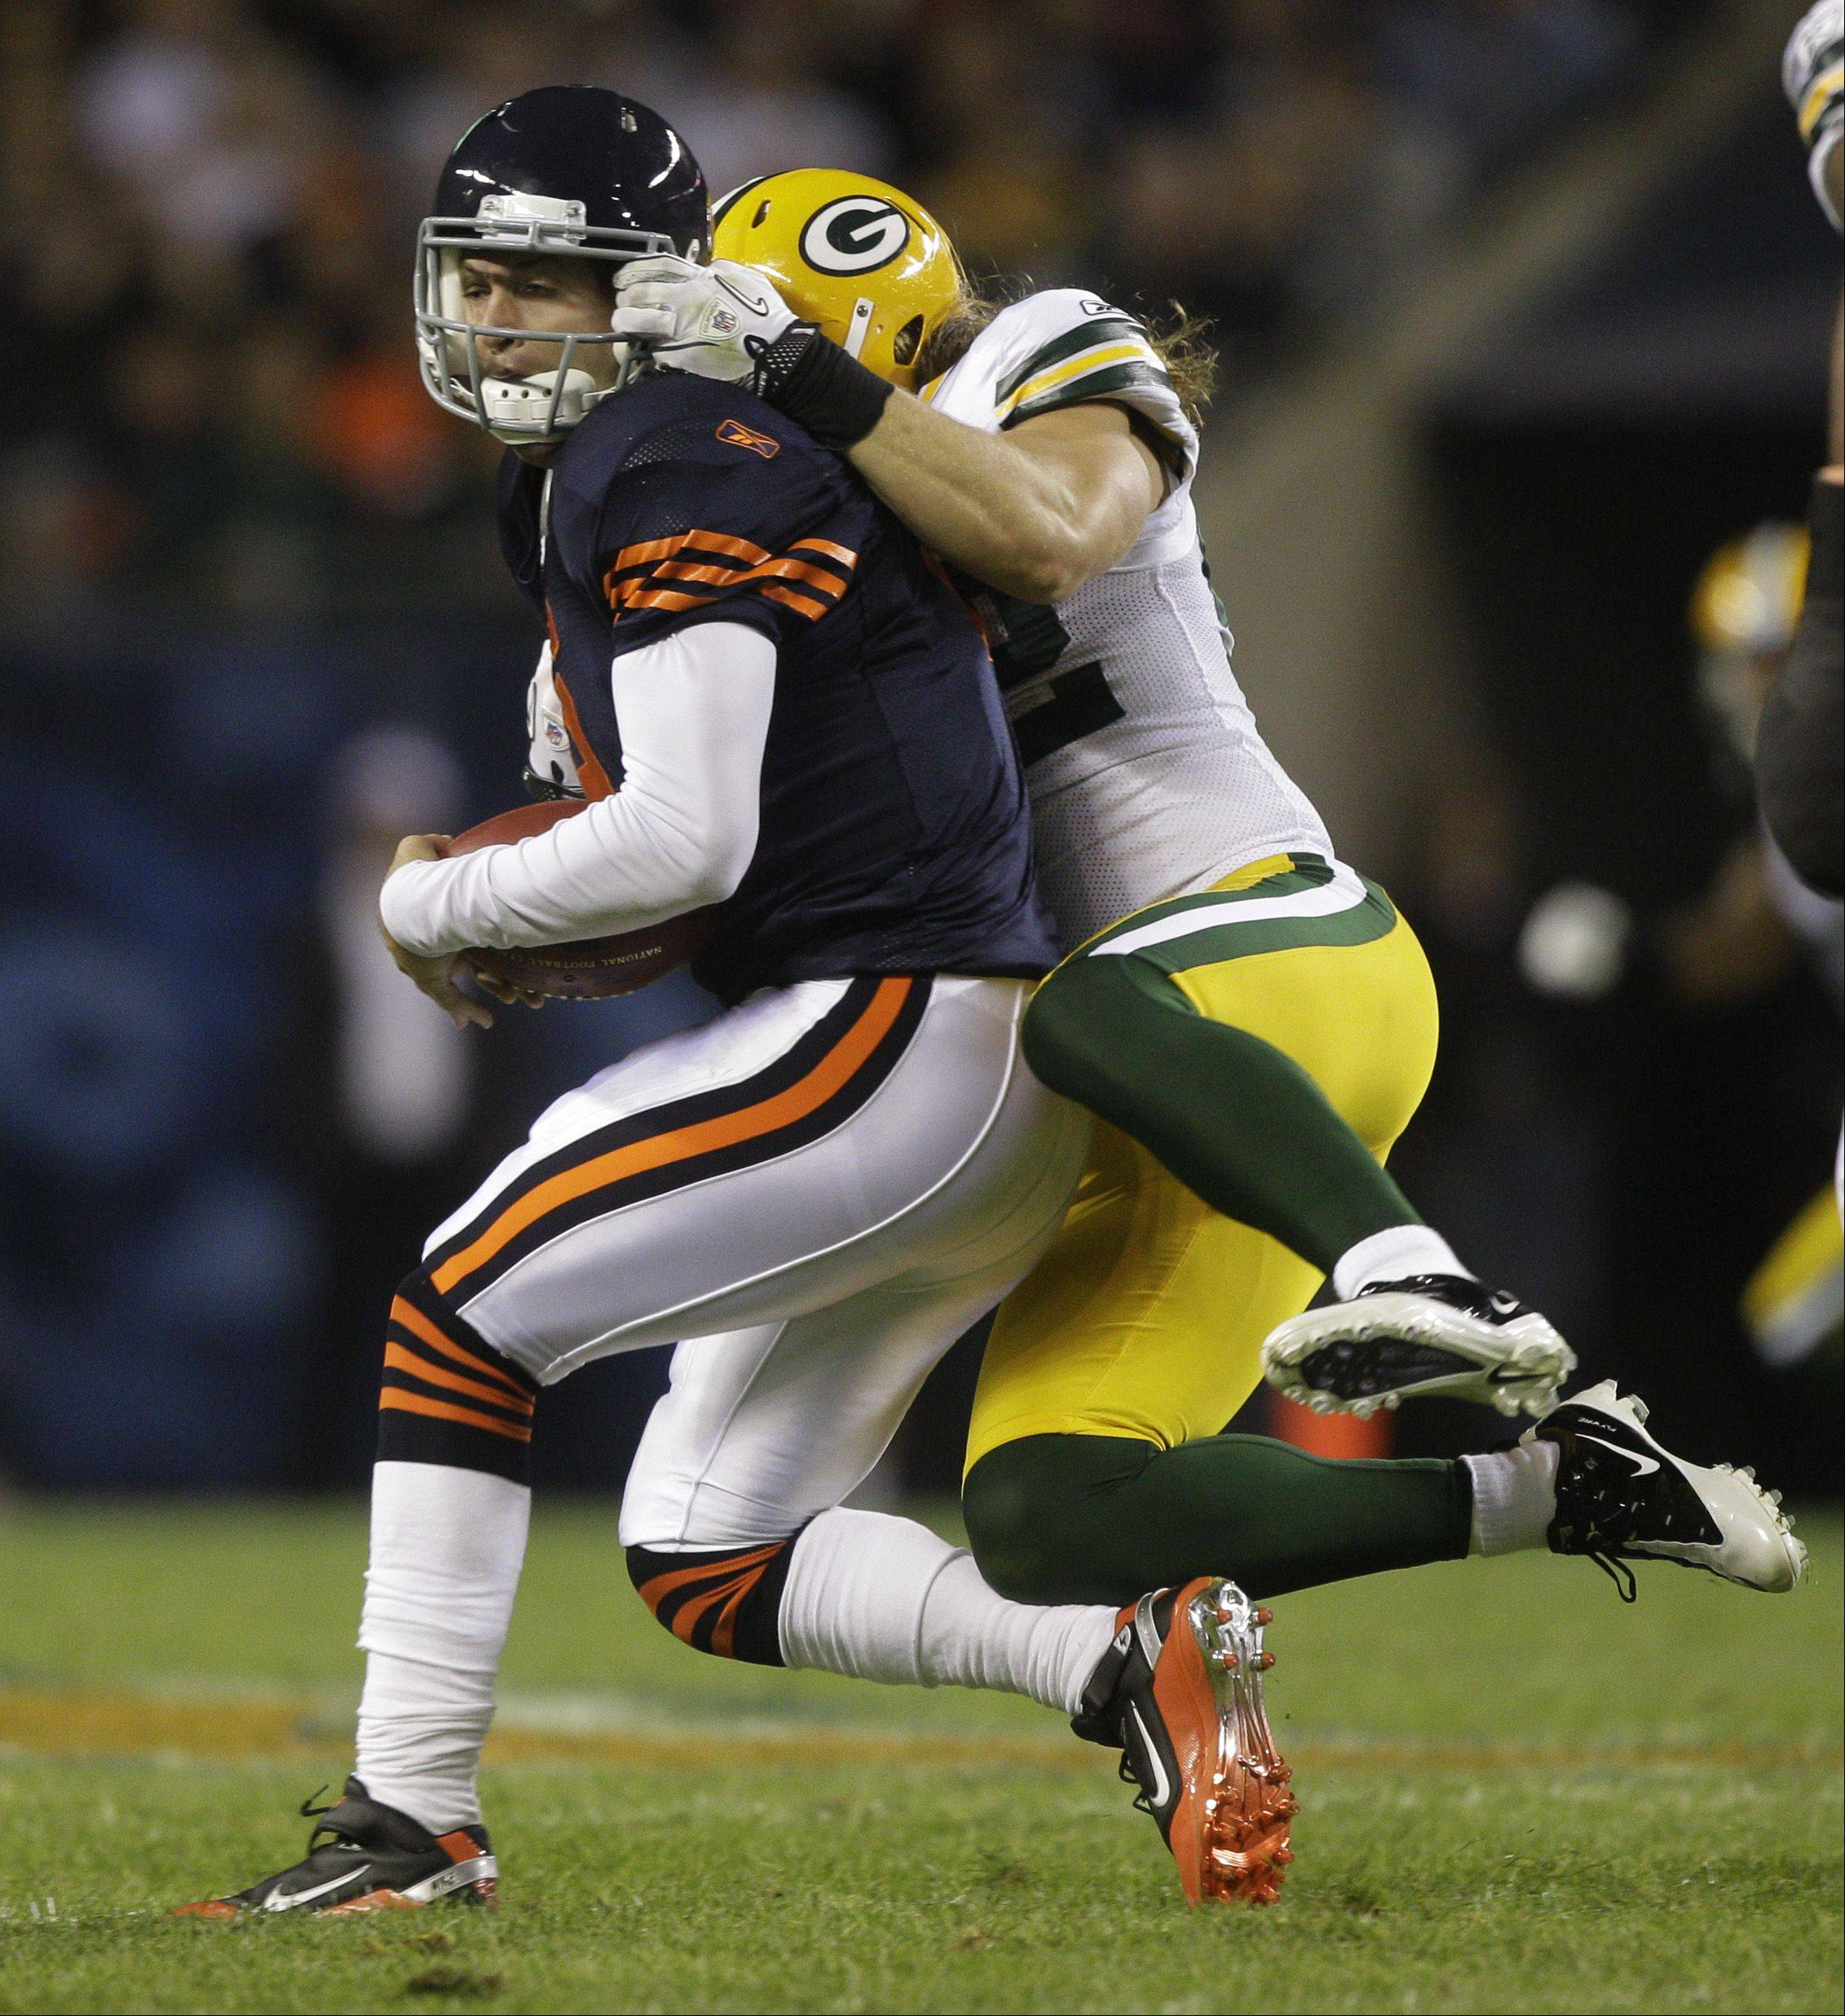 Bears quarterback Jay Cutler (6) is tackled by Green Bay Packers linebacker Clay Matthews during the first half of an NFL football game Monday, Sept. 27, 2010, in Chicago. Matthews was called for a facemask penalty on the play.